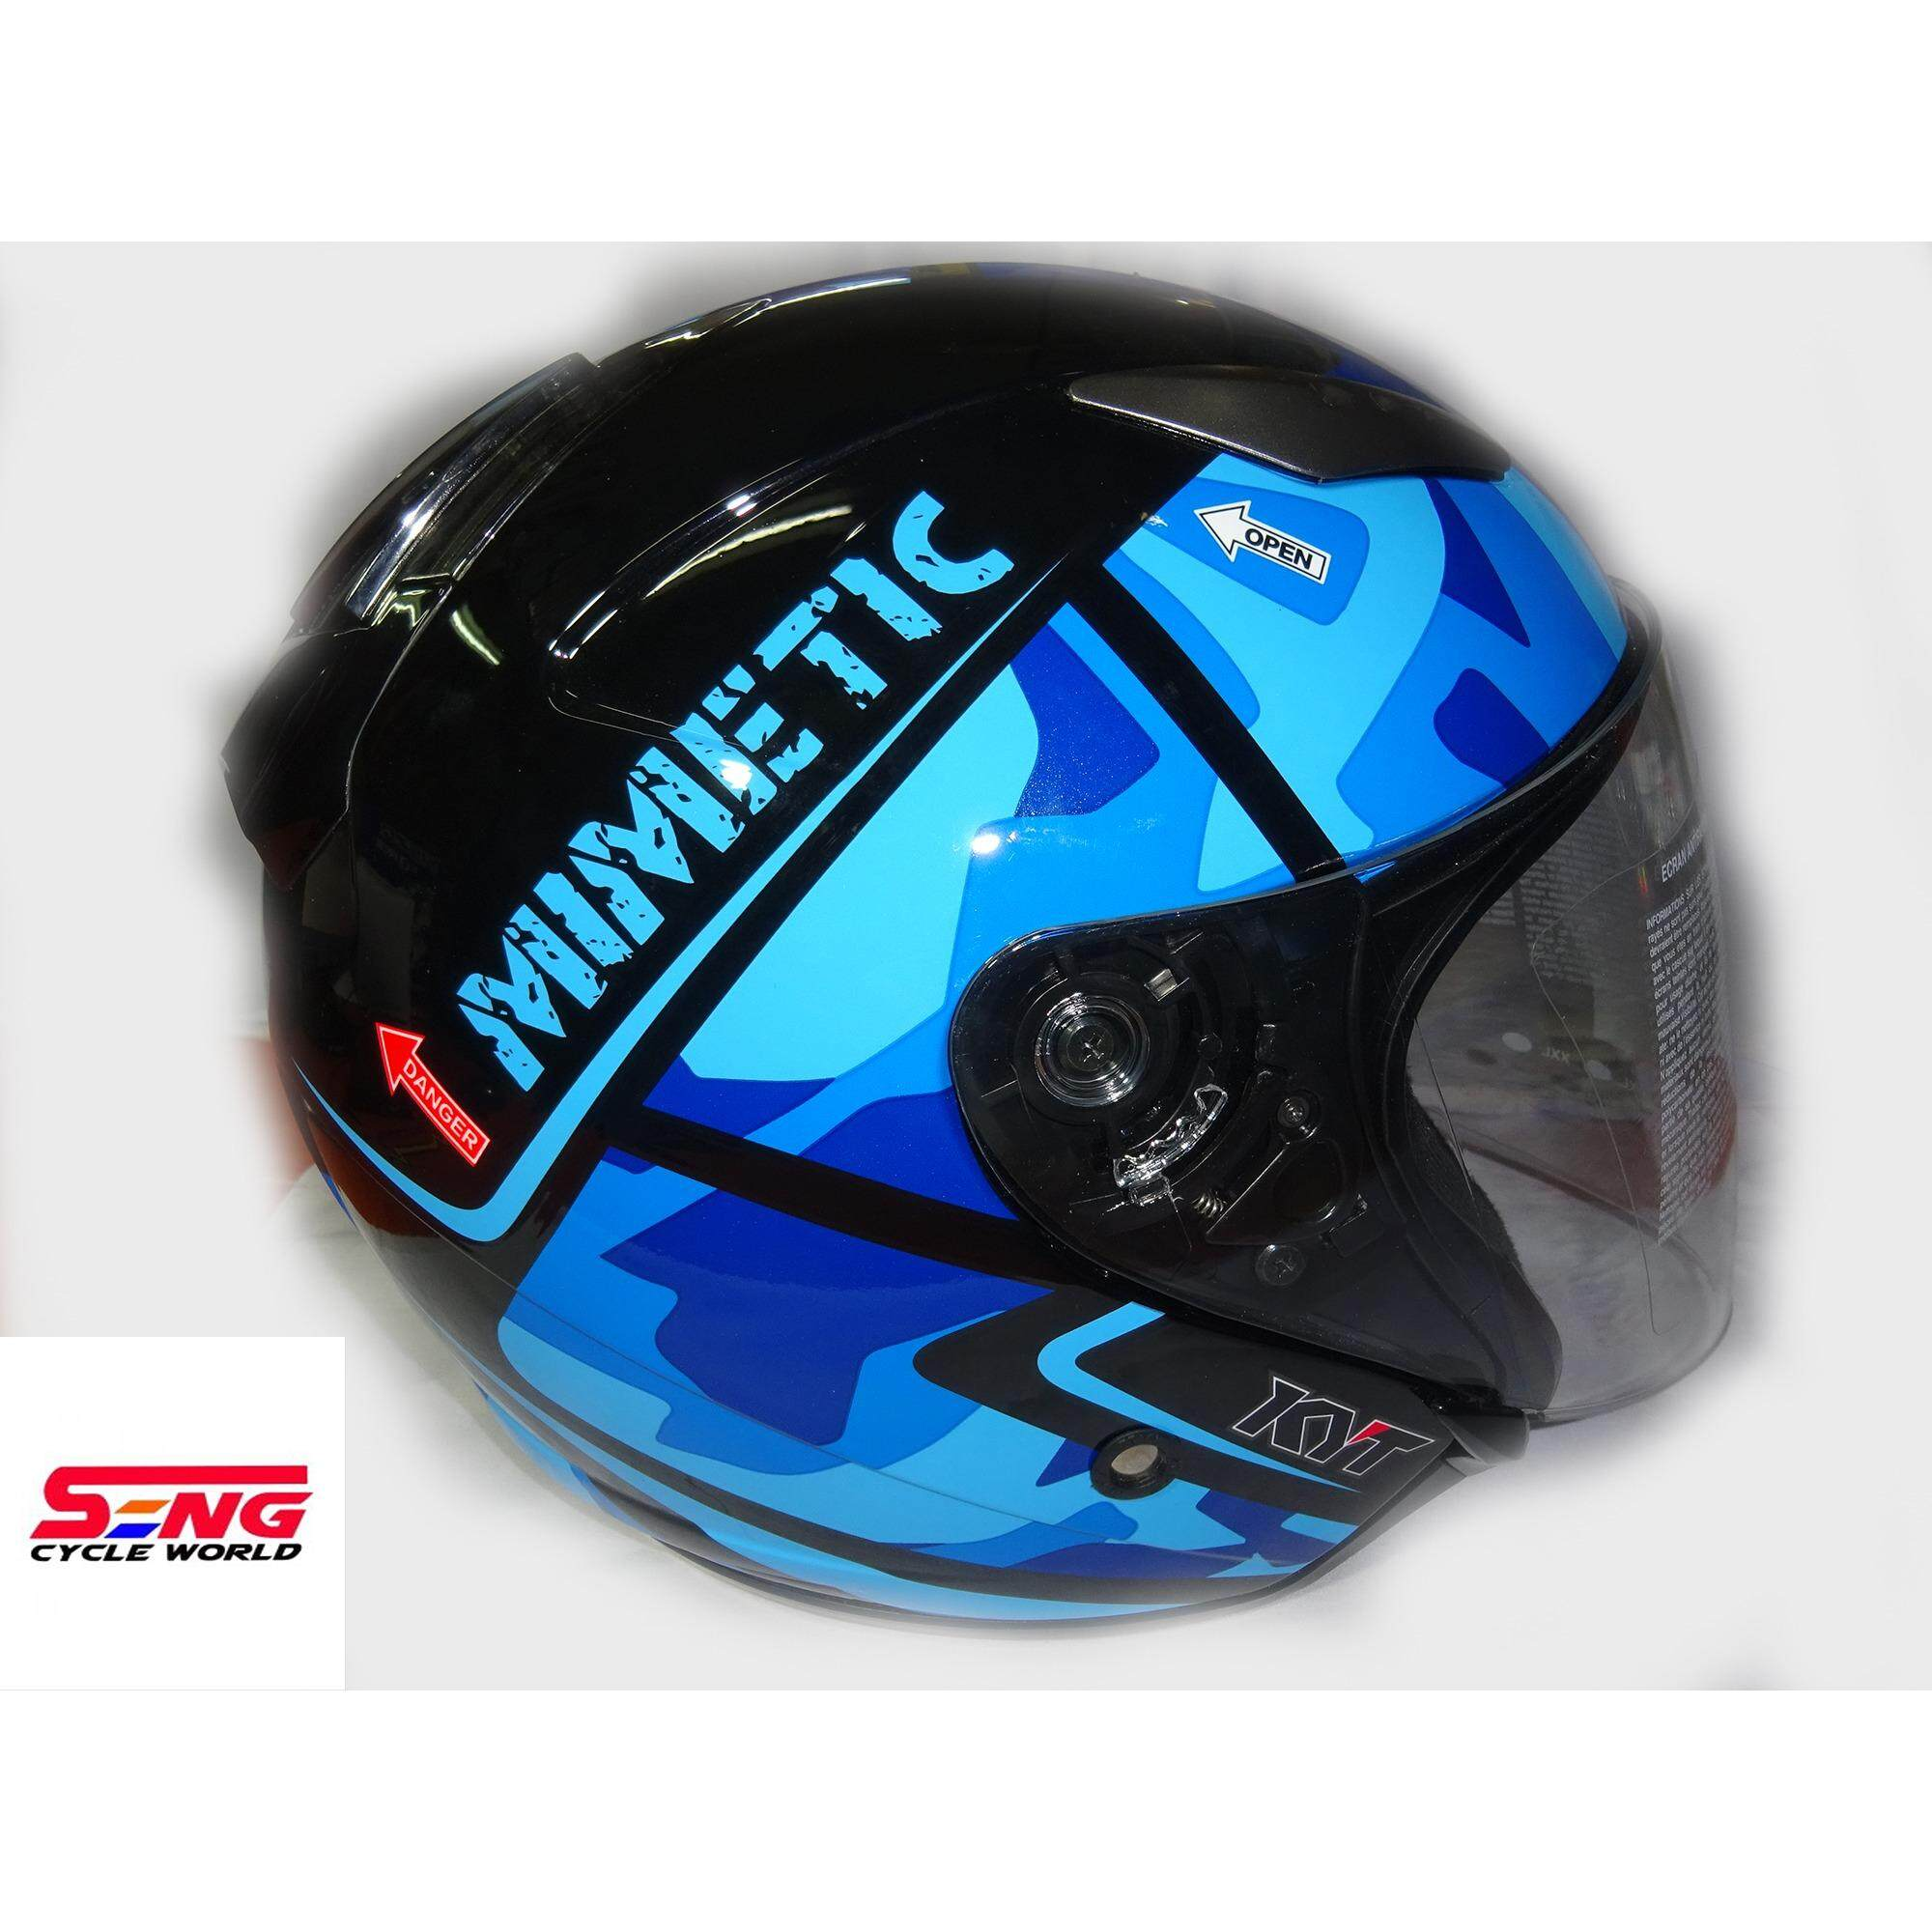 Kyt Buy At Best Price In Malaysia Vendetta Flat Visor Pinlock Big Dark Smoke Windshields Accessories